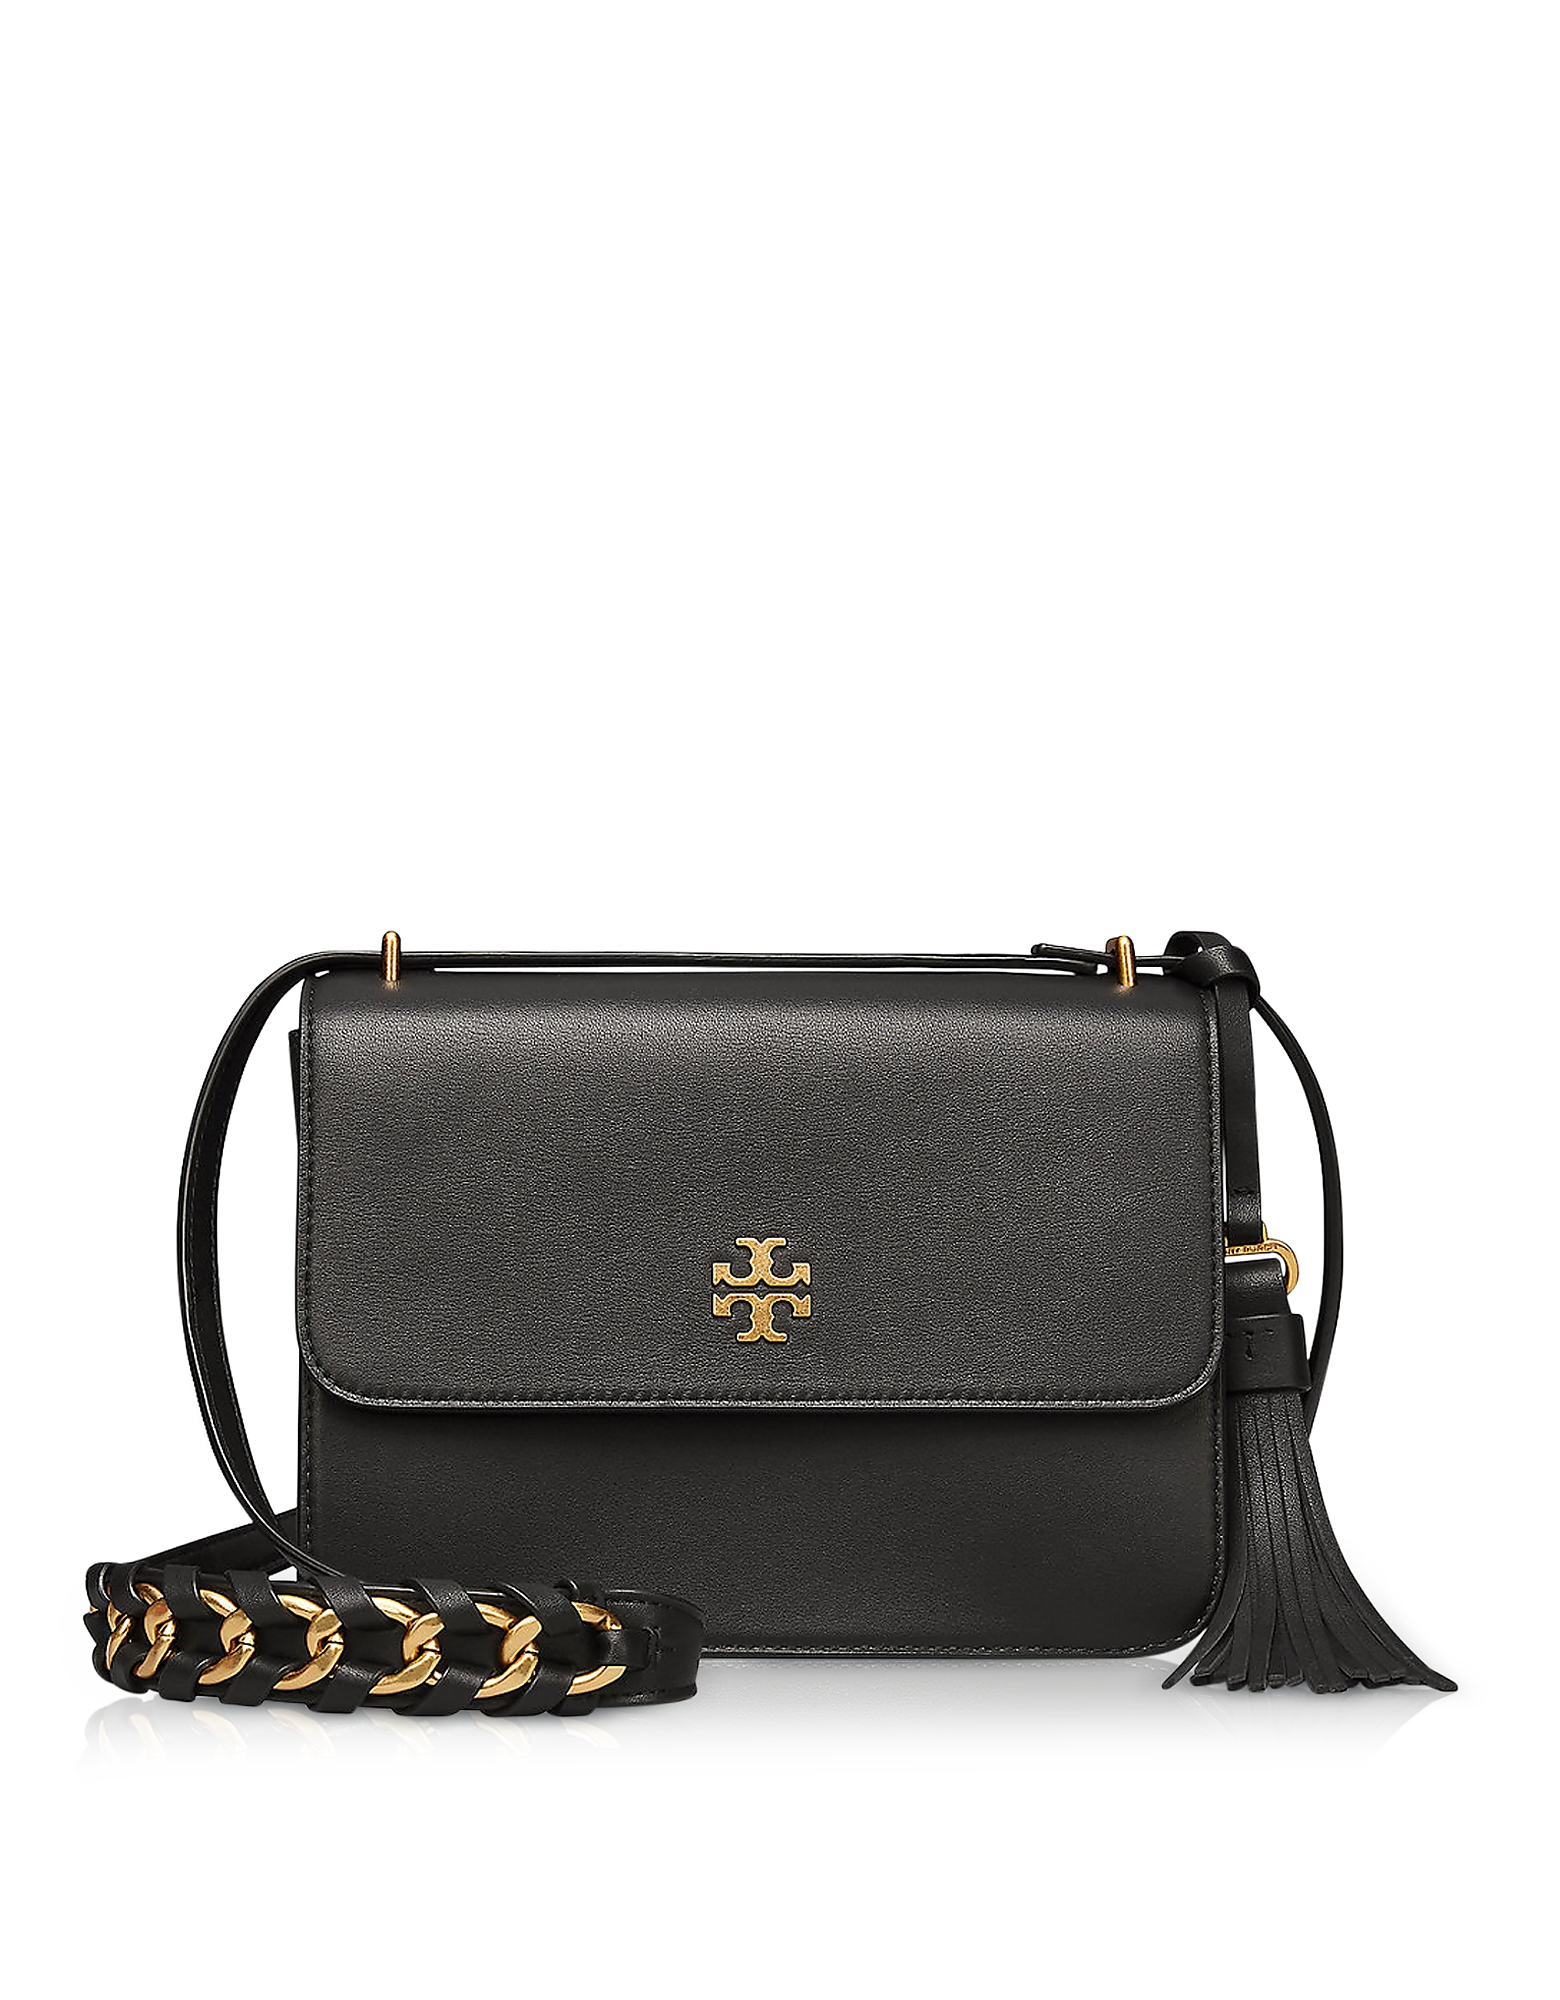 9fb765087641 Tory Burch - Brooke Black Leather Shoulder Bag